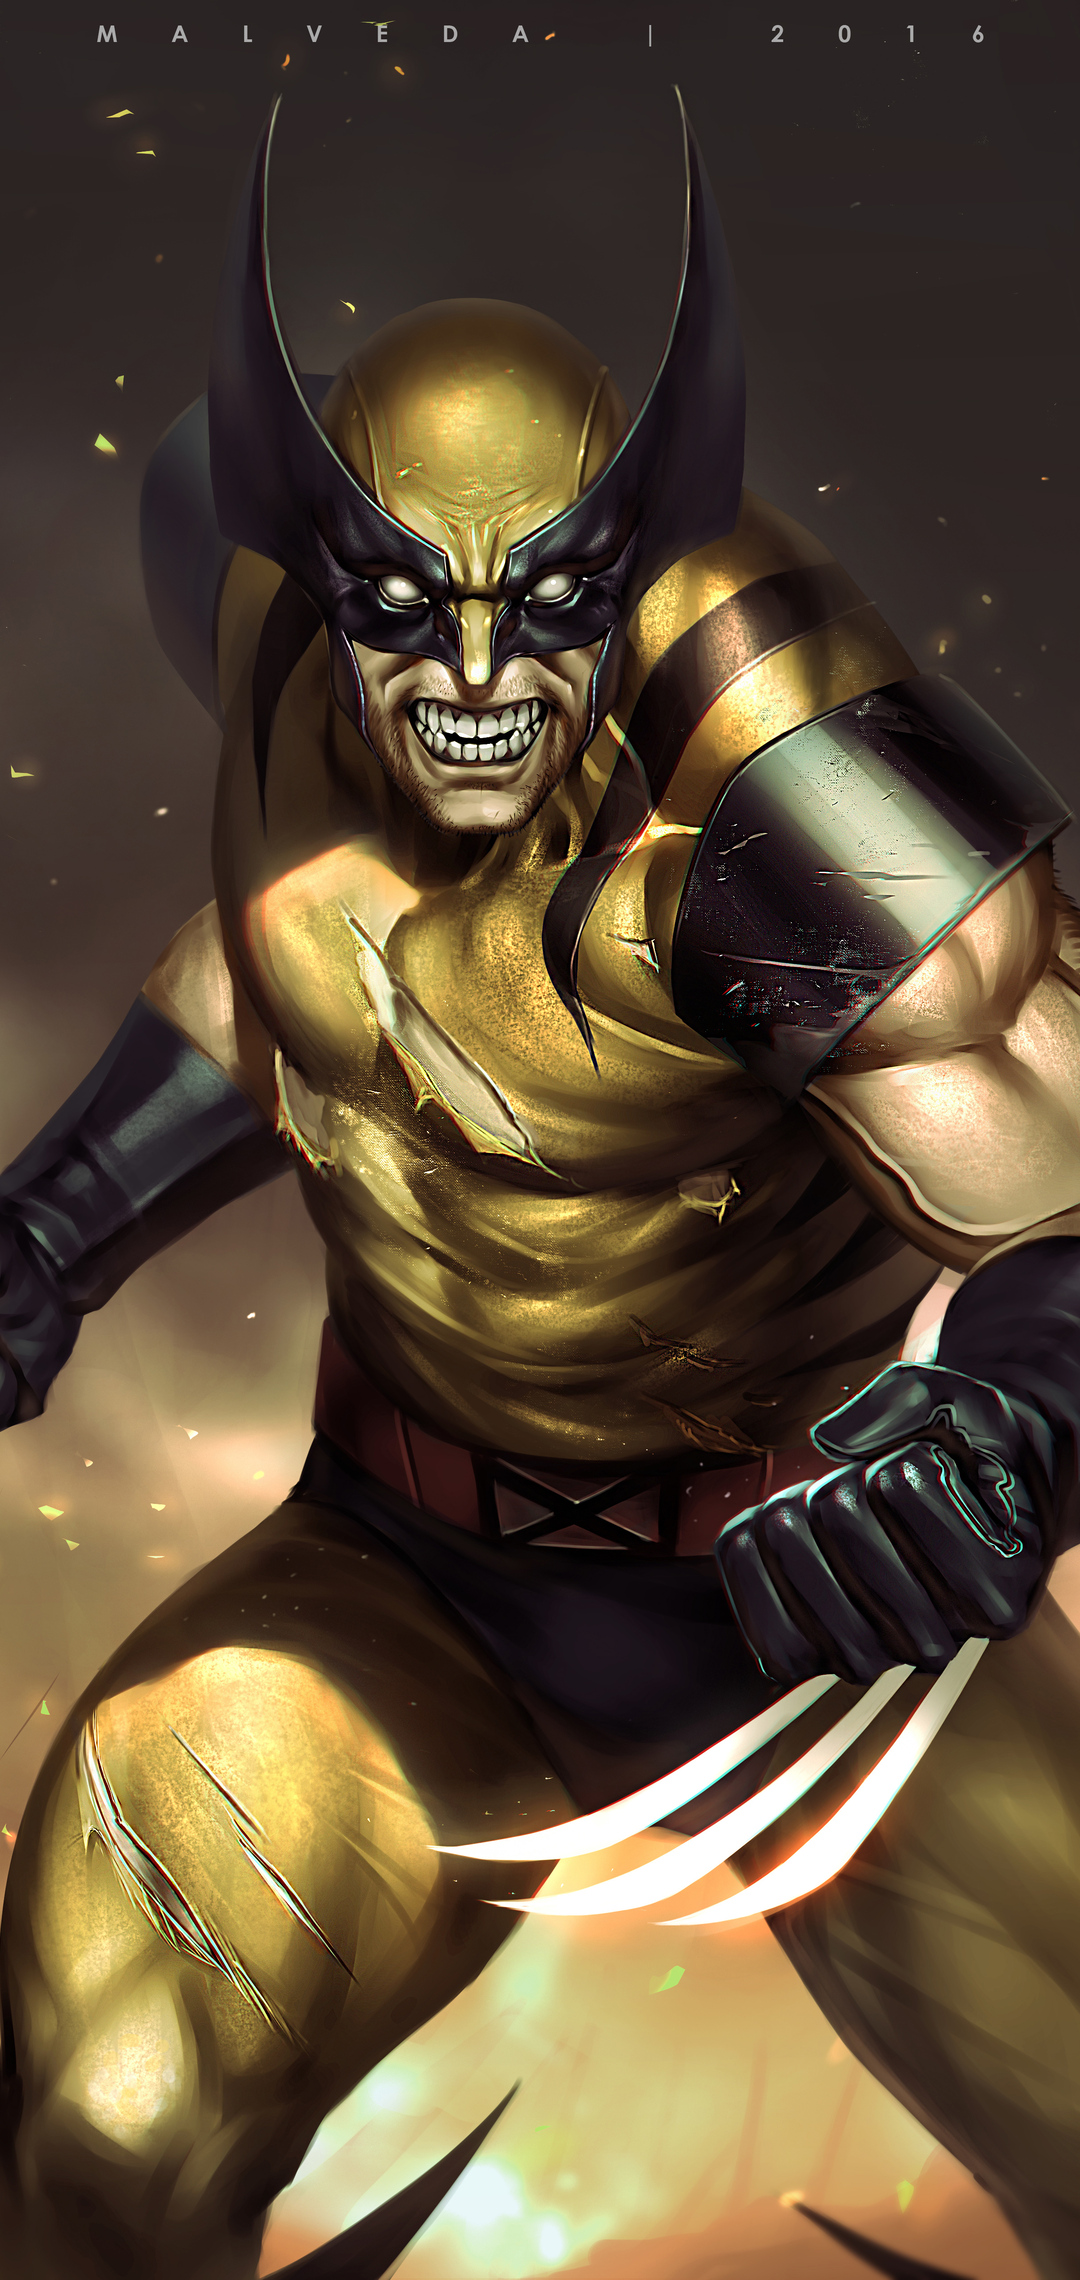 wolverine-4k-new-artwork-ct.jpg